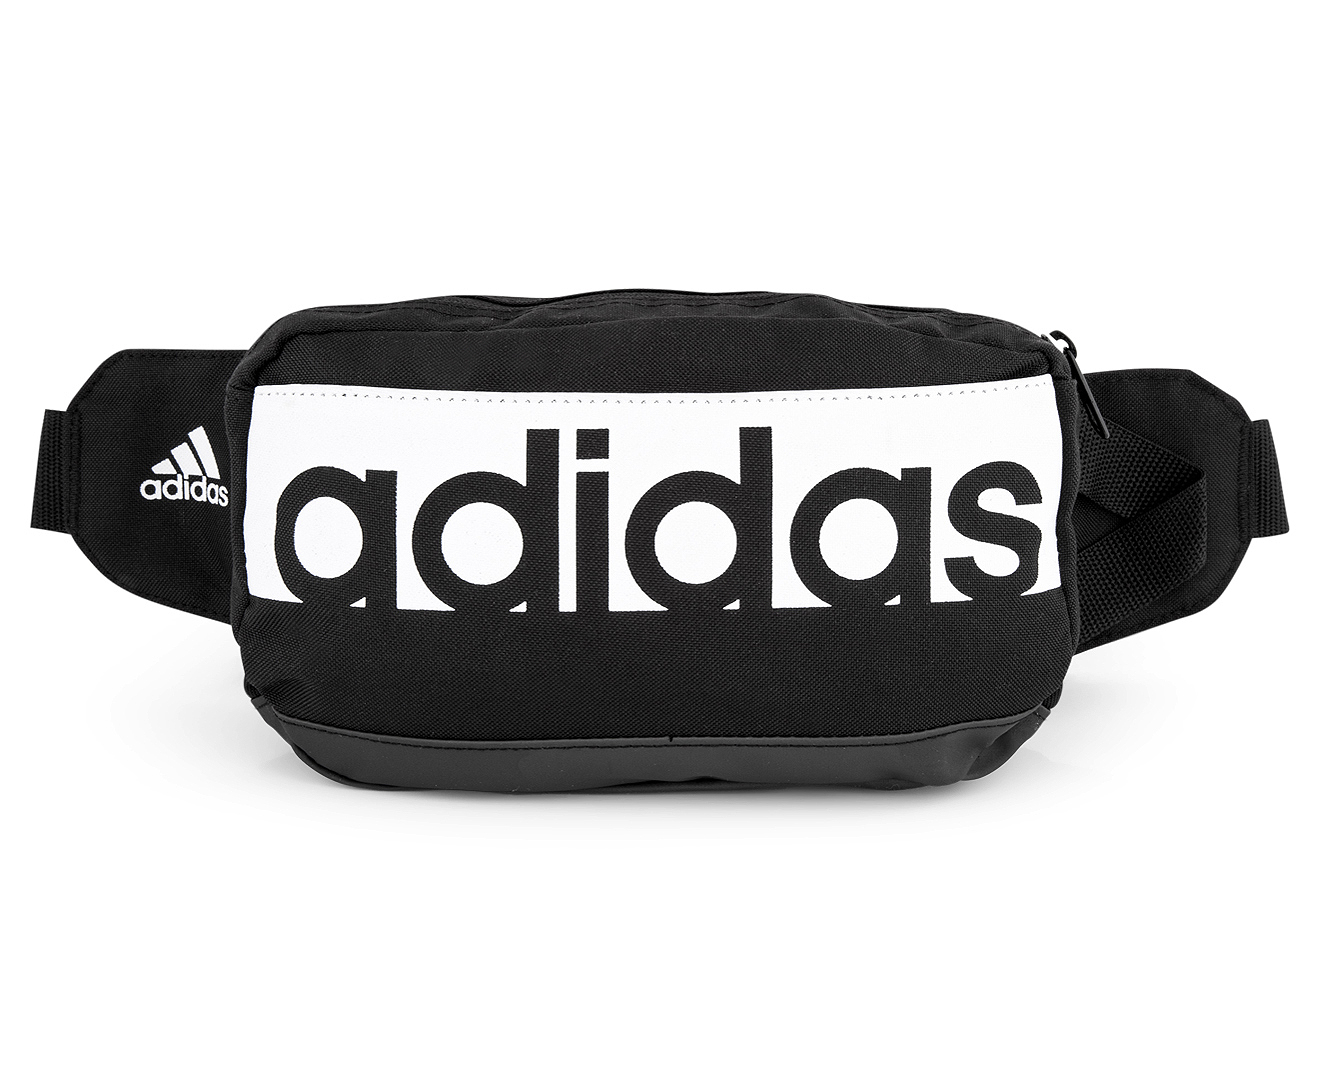 59b78d879182 Adidas Linear Performance Waist Bag - Black